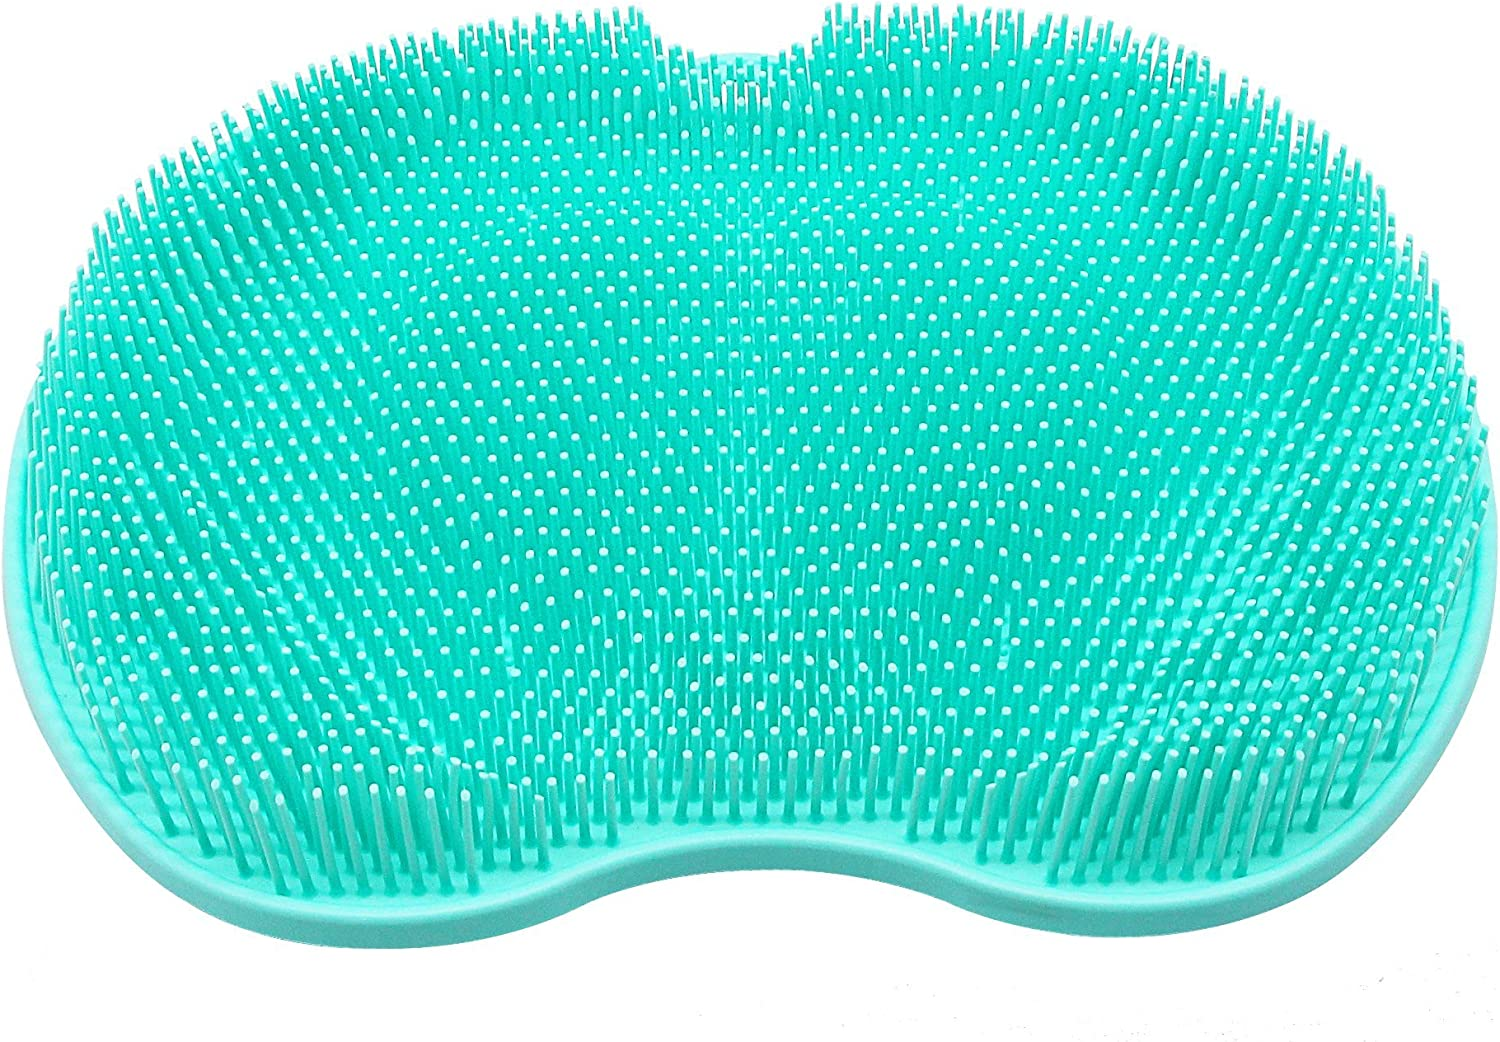 SinLoon Foot Brush Cleaner Feet Massager Foot Scrubber Shower Mat with Non-Slip Suction Cups and Soft Firm Bristles Exfoliation Improves Foot Circulation (Green Large)